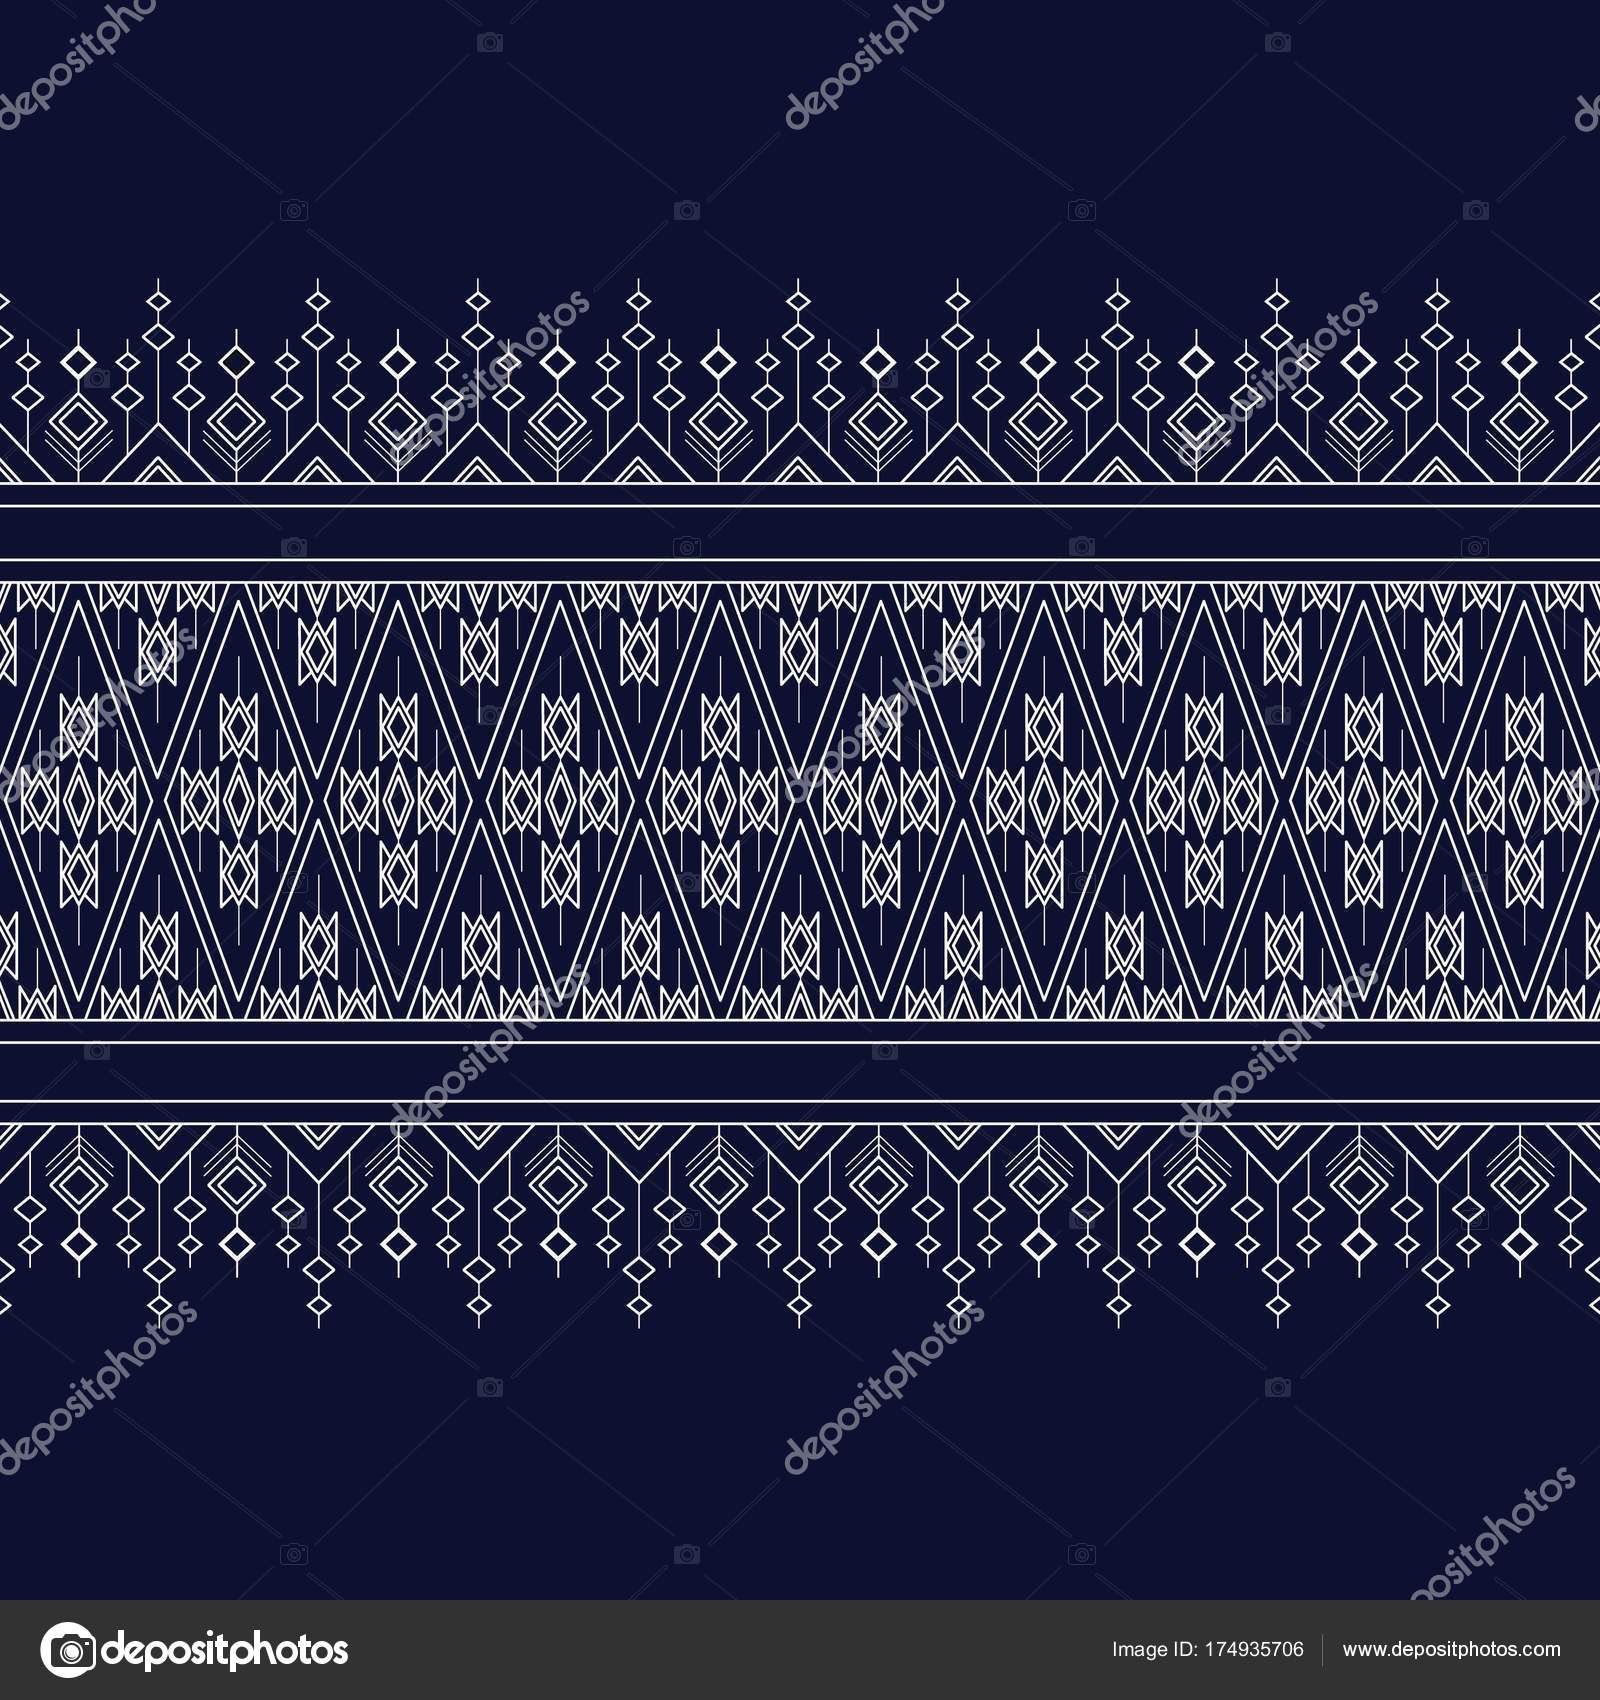 Geometric Ethnic Pattern Traditional Design Background Carpet Wallpaper Clothing Wrapping Stock Vector C Suradet3664 174935706